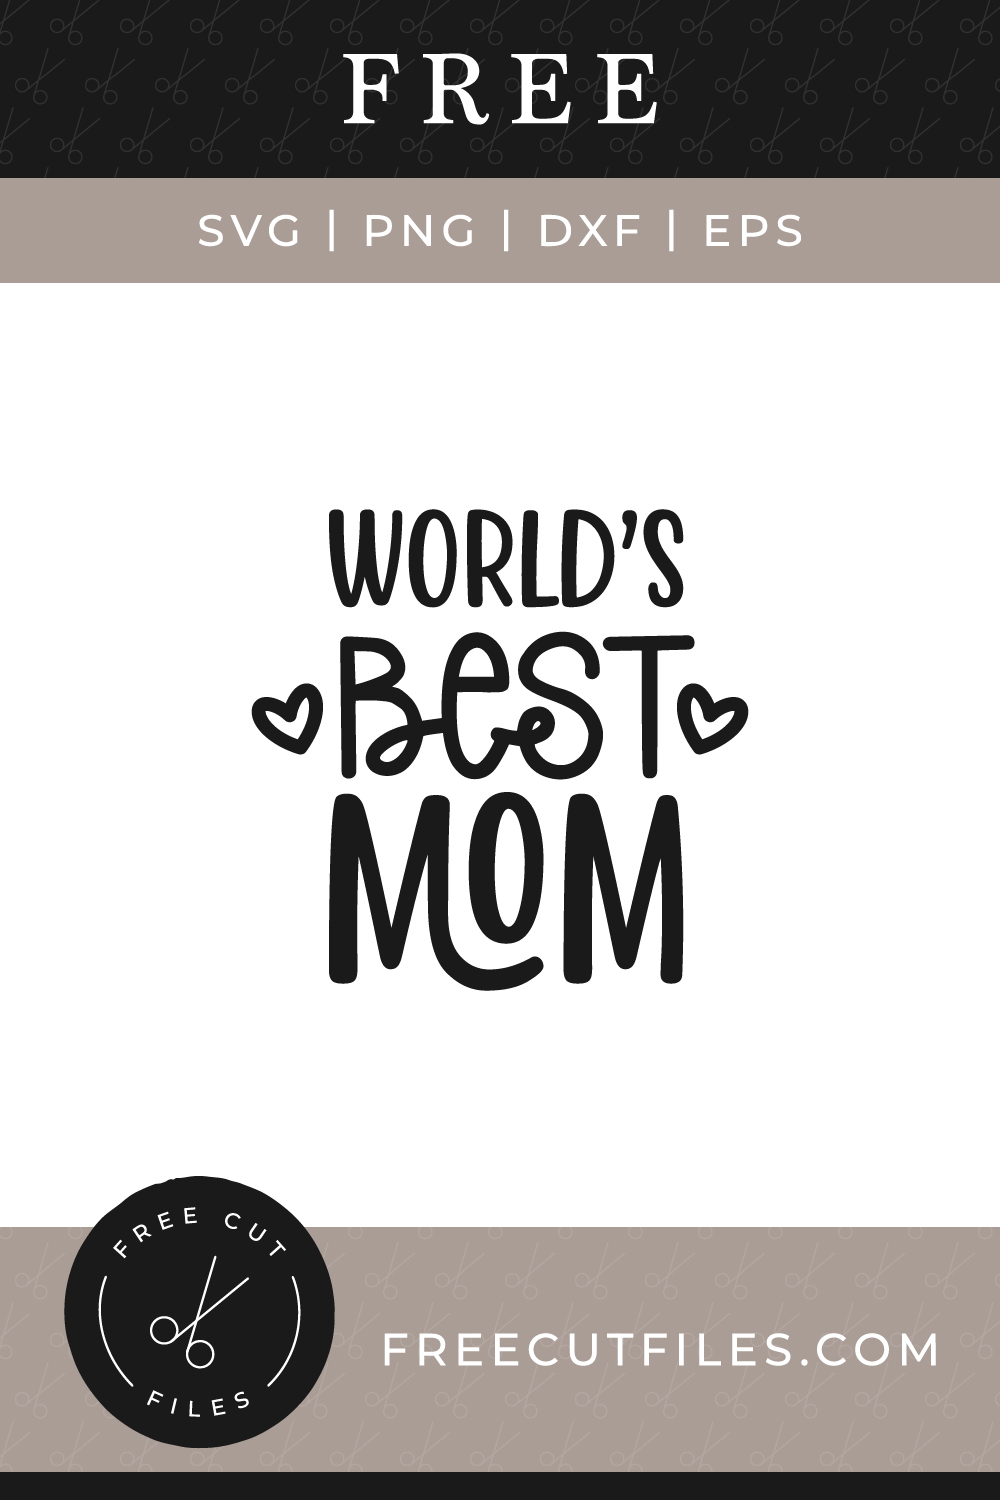 Free World's Best Mom SVG, PNG, DXF, EPS by Free Cut Files